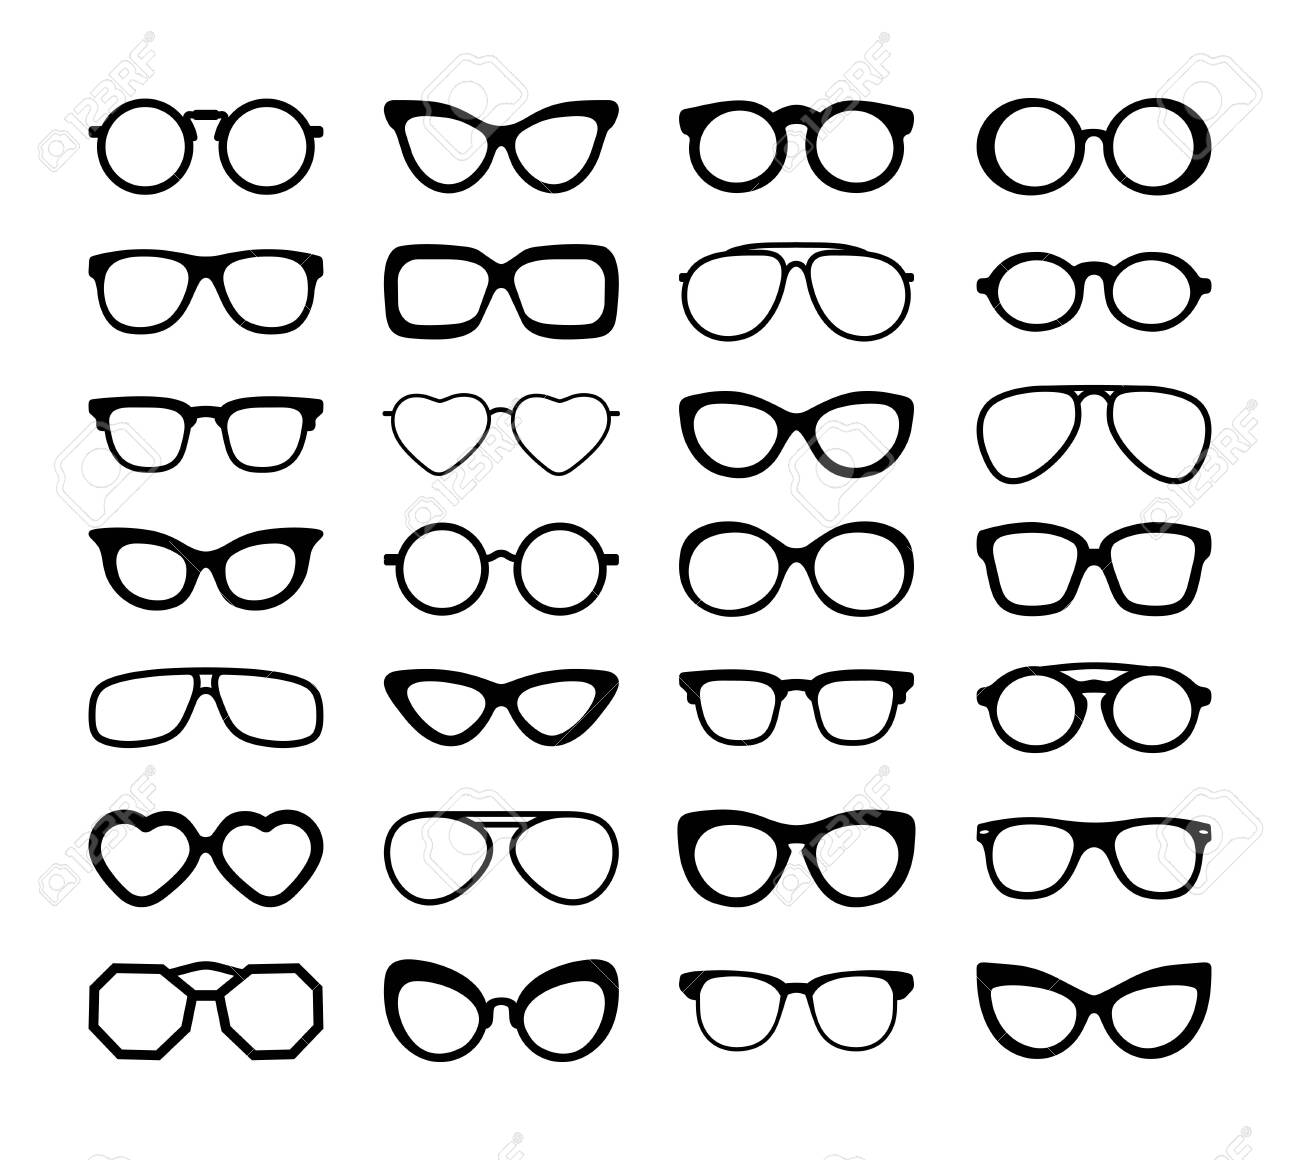 Set Of Black Silhouettes Of Different Eyeglasses. Flat Design. Vector Illustration. Isolated On White Background. - 124150900